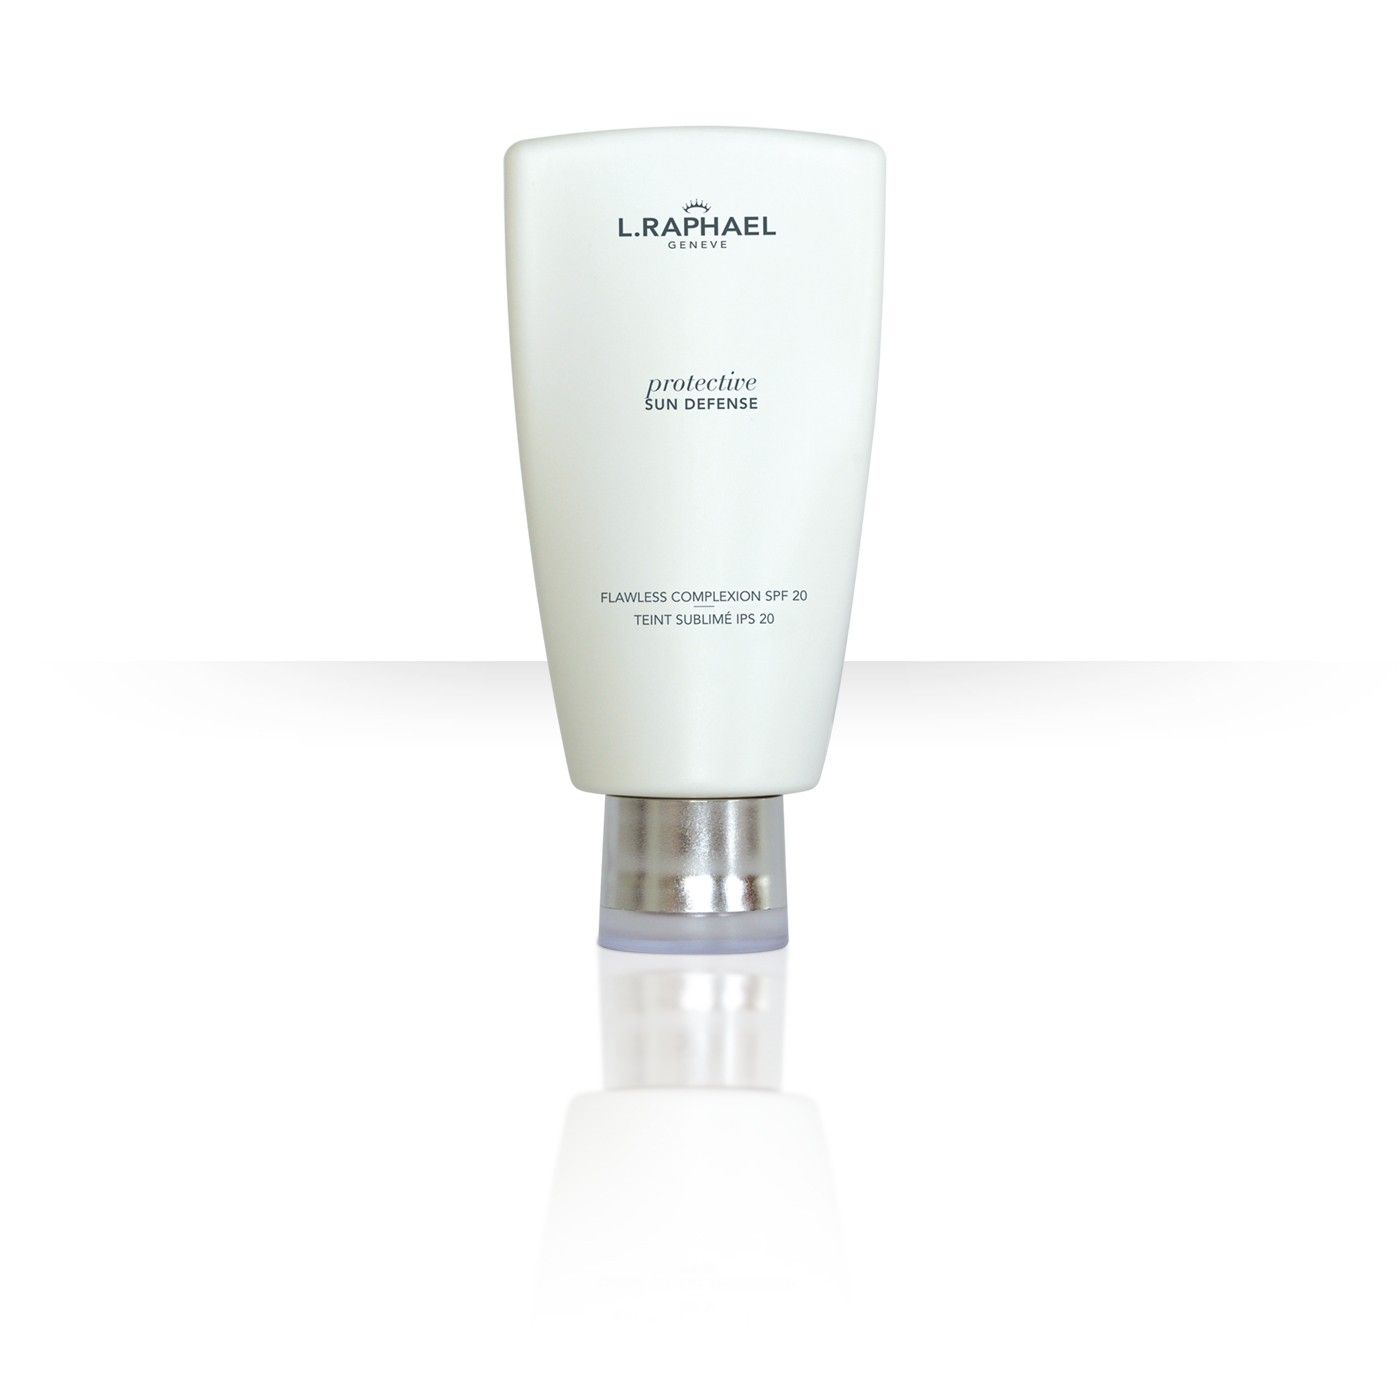 Flawless Complexion SPF 20 -- OUT OF STOCK